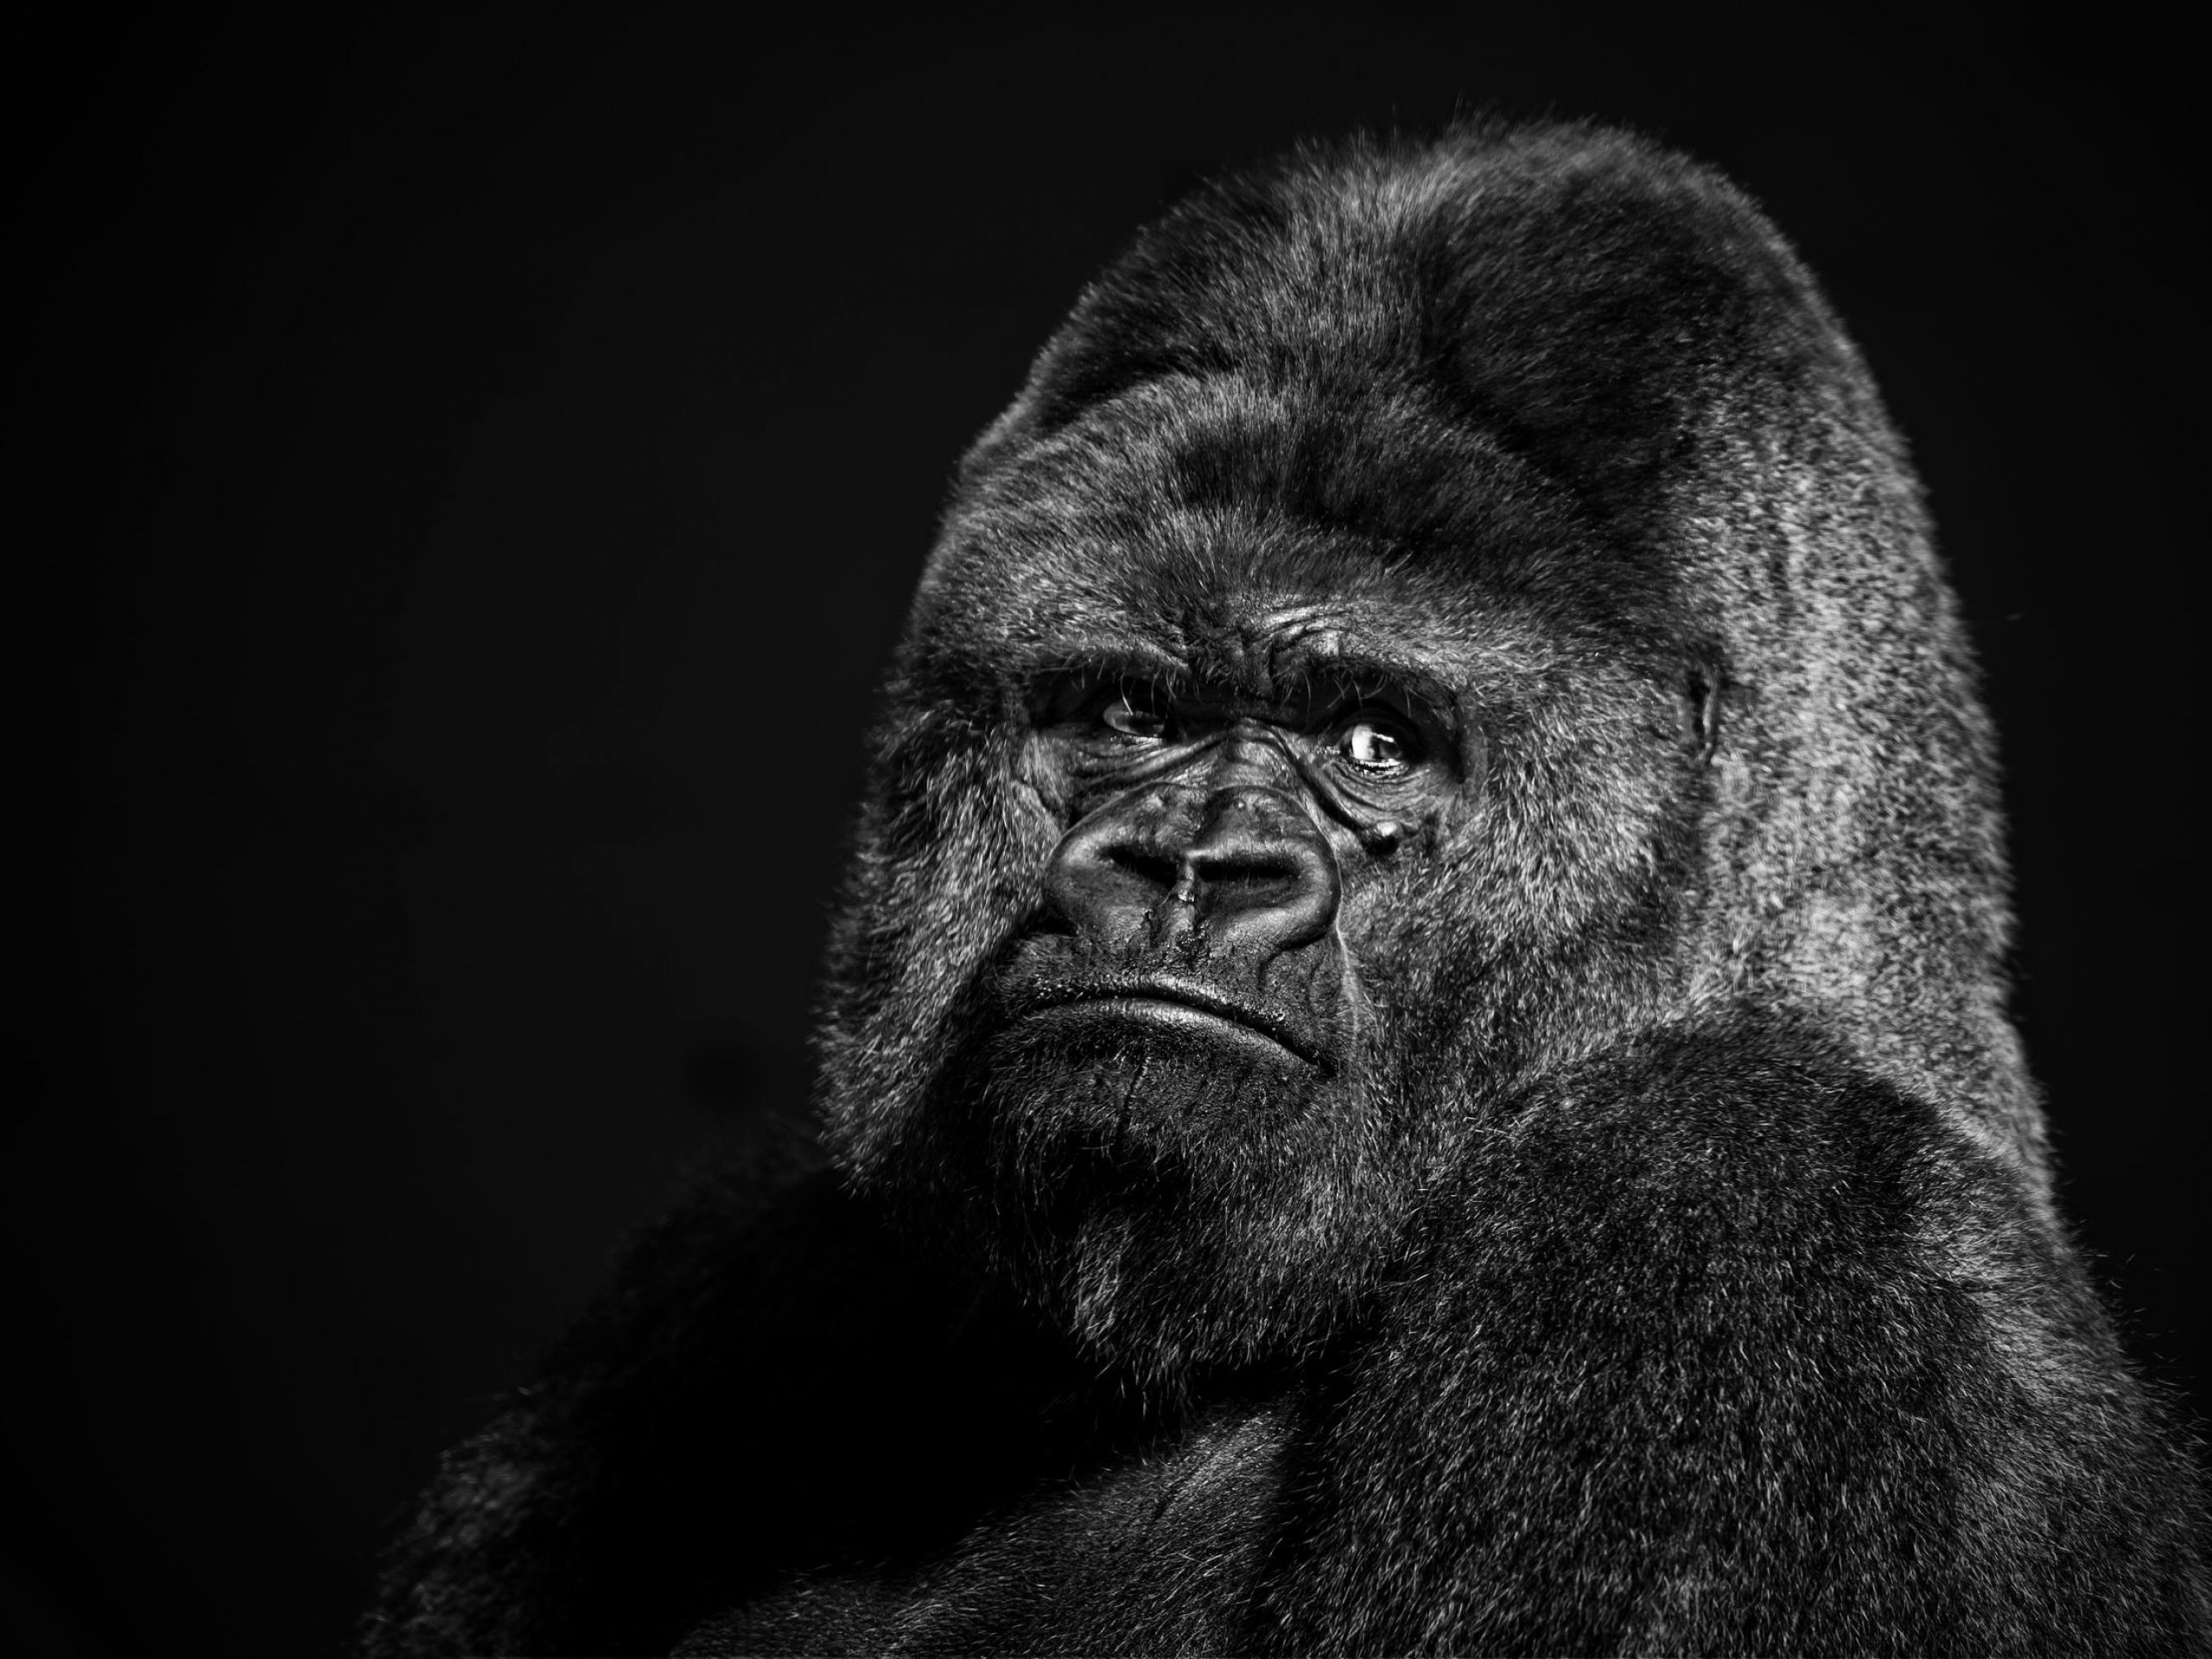 Gorilla Collection See All Wallpapers Wallpapers Background Animals In 2020 Gorilla Gorilla Wallpaper Animal Wallpaper